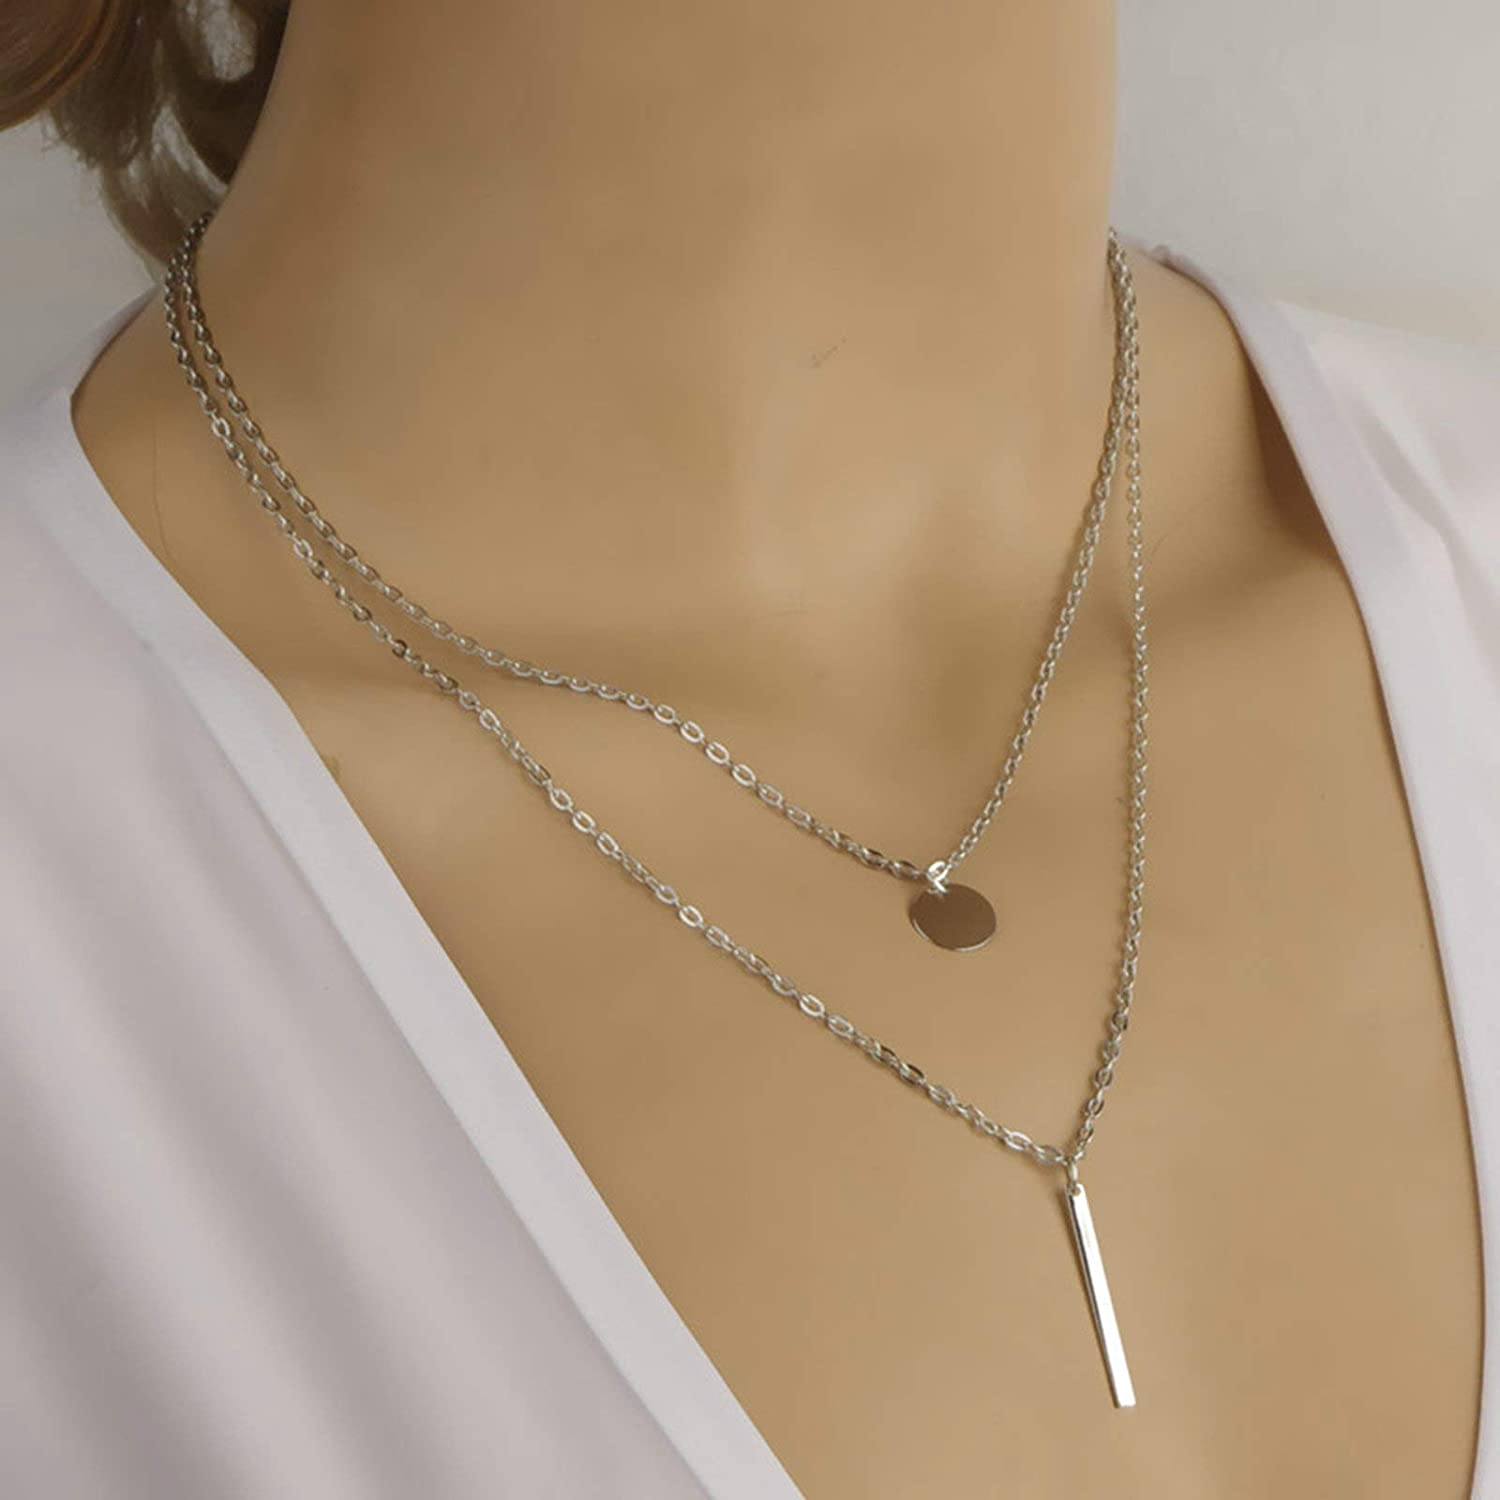 Epinki Silver Plated 2 Layered Necklace Silver Rectangular Column Round Tag Chain Necklace for Women and Girls